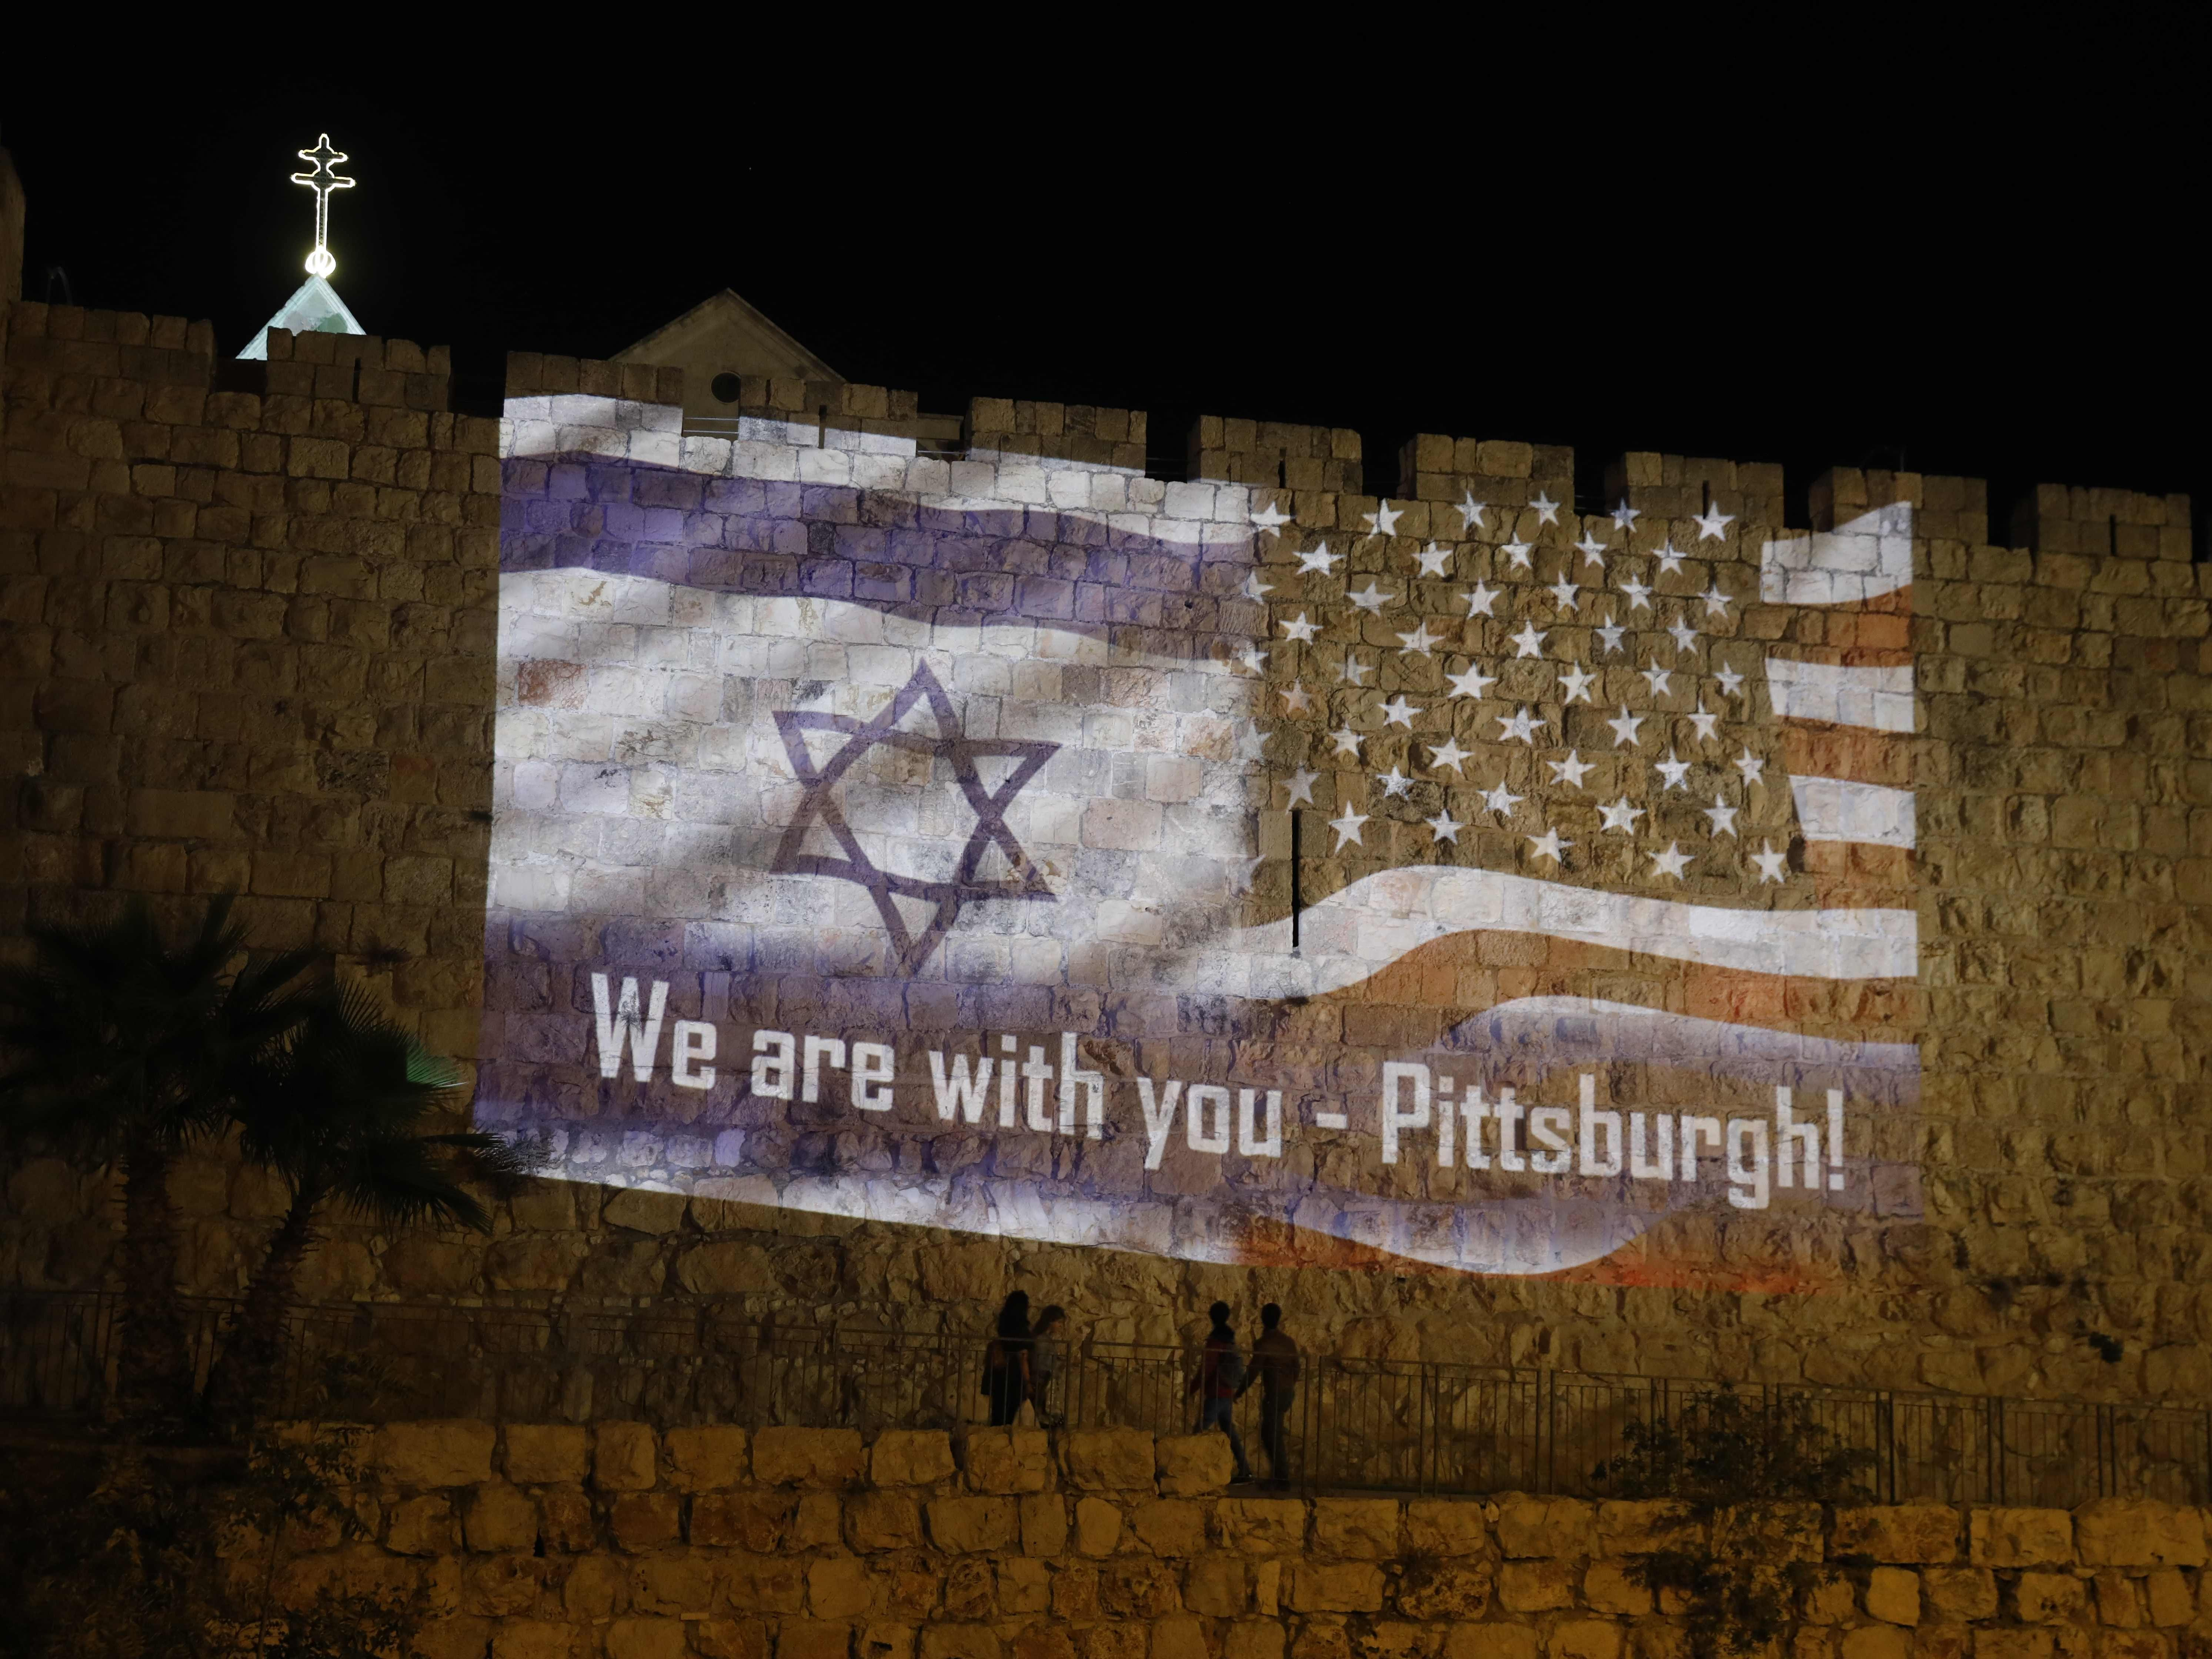 People walk under the U.S. and Israeli flags projected on the walls of Jerusalem old city, Oct. 28, 2018, organized by the Jerusalem municipality to show solidarity with the Pittsburgh Jewish community following the shooting attack at the Tree of Life Synagogue in Pittsburgh.